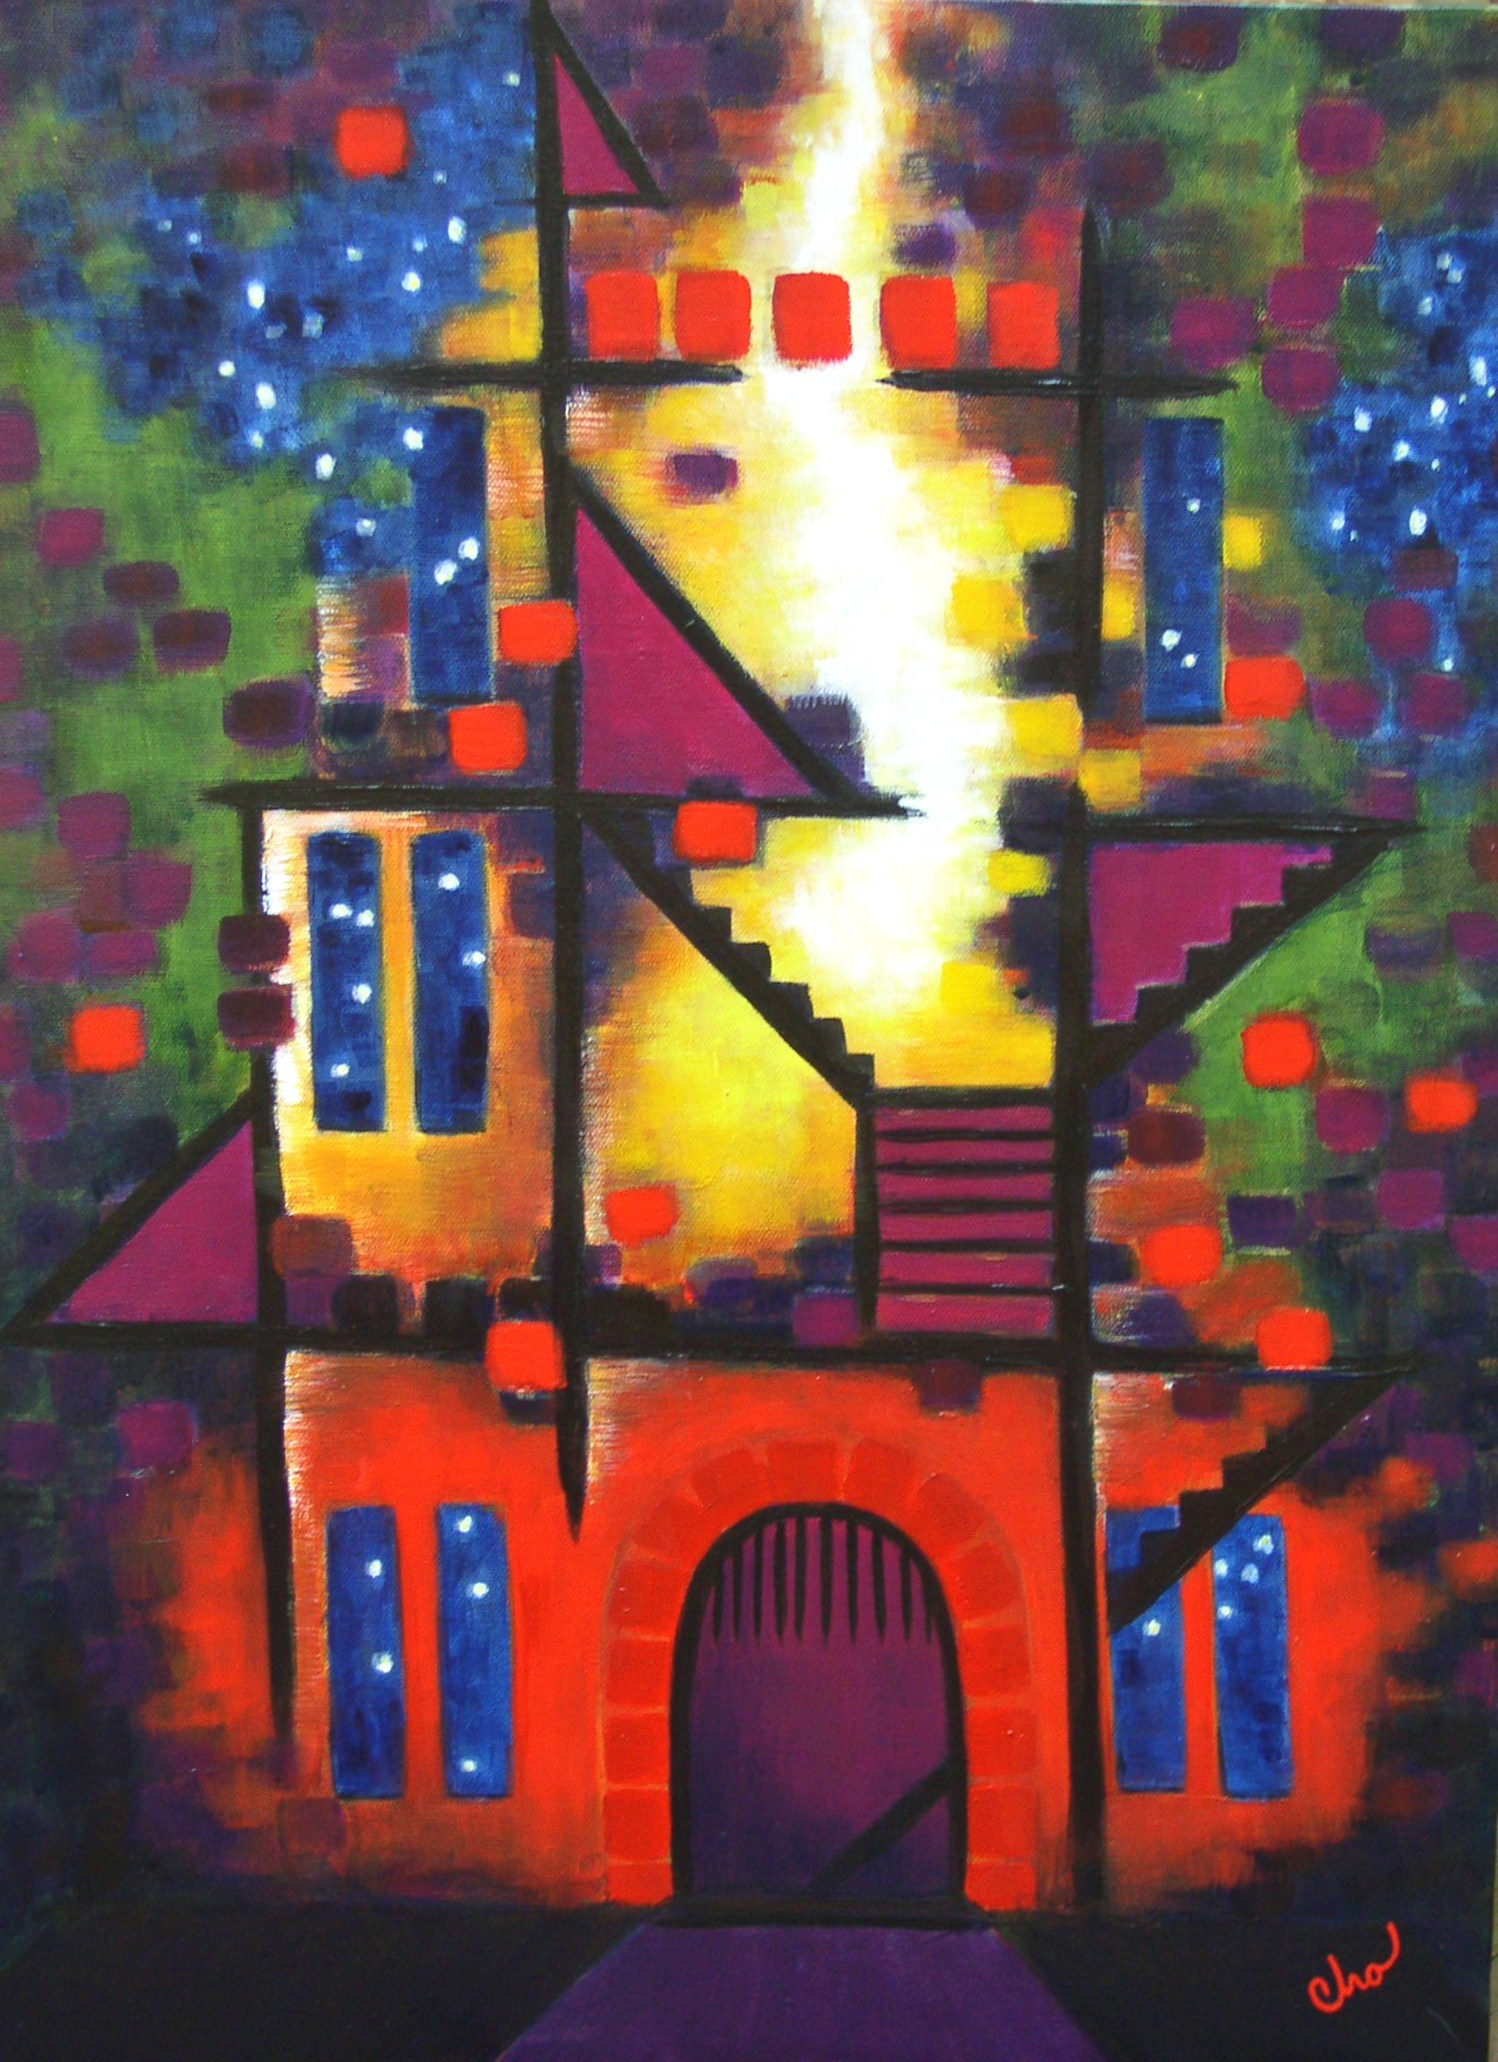 Fortification--Oct 2011 24x18-- $200